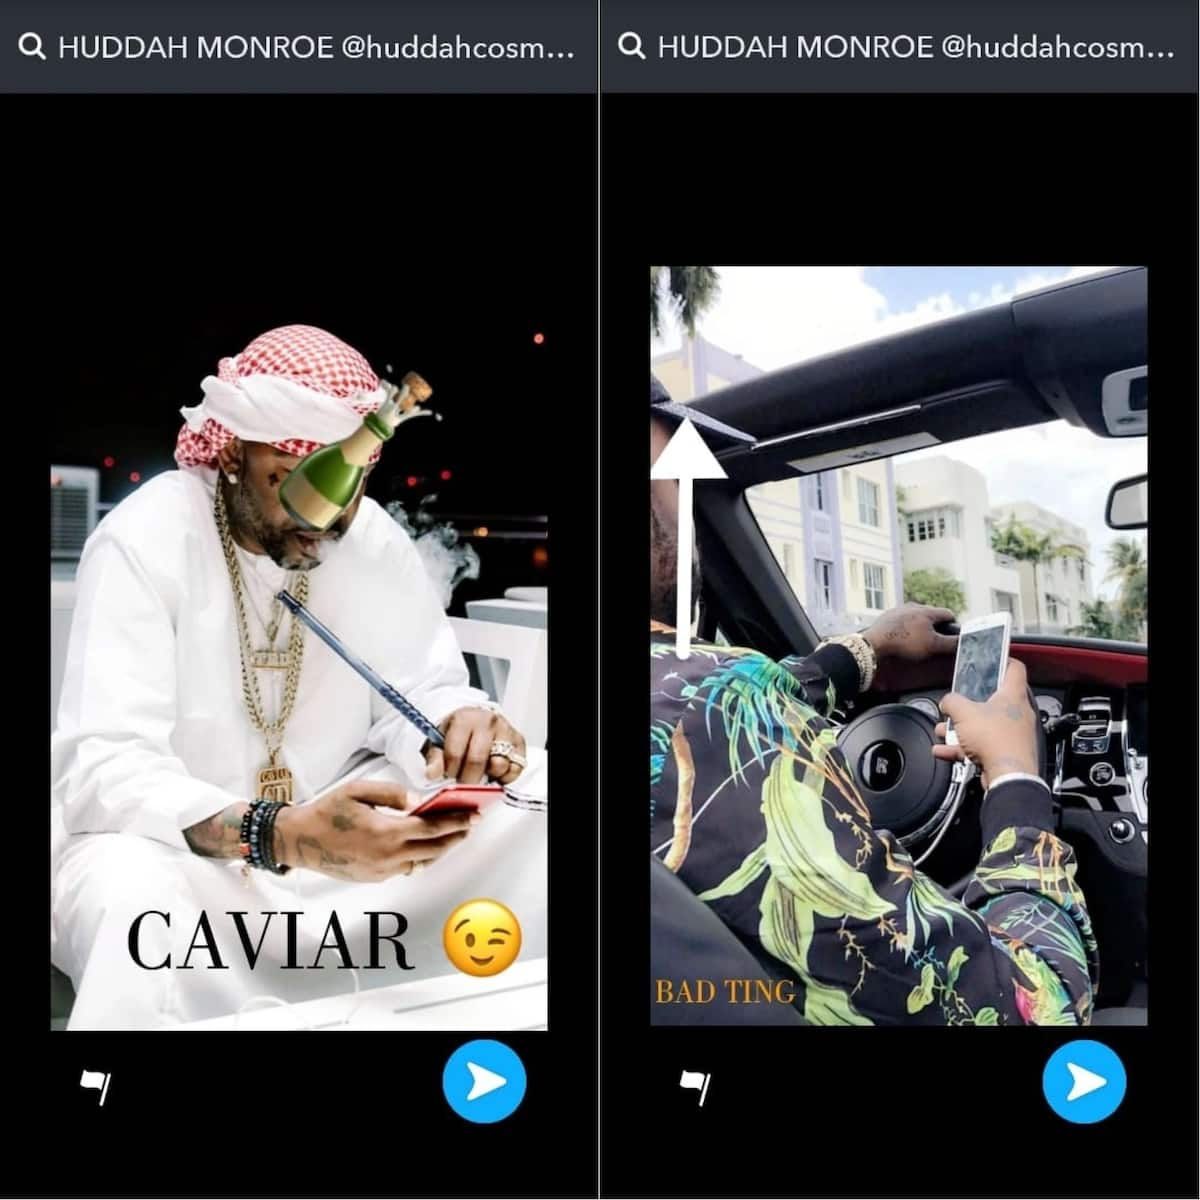 Is this her new lover? Huddah unveils handsome Arab man